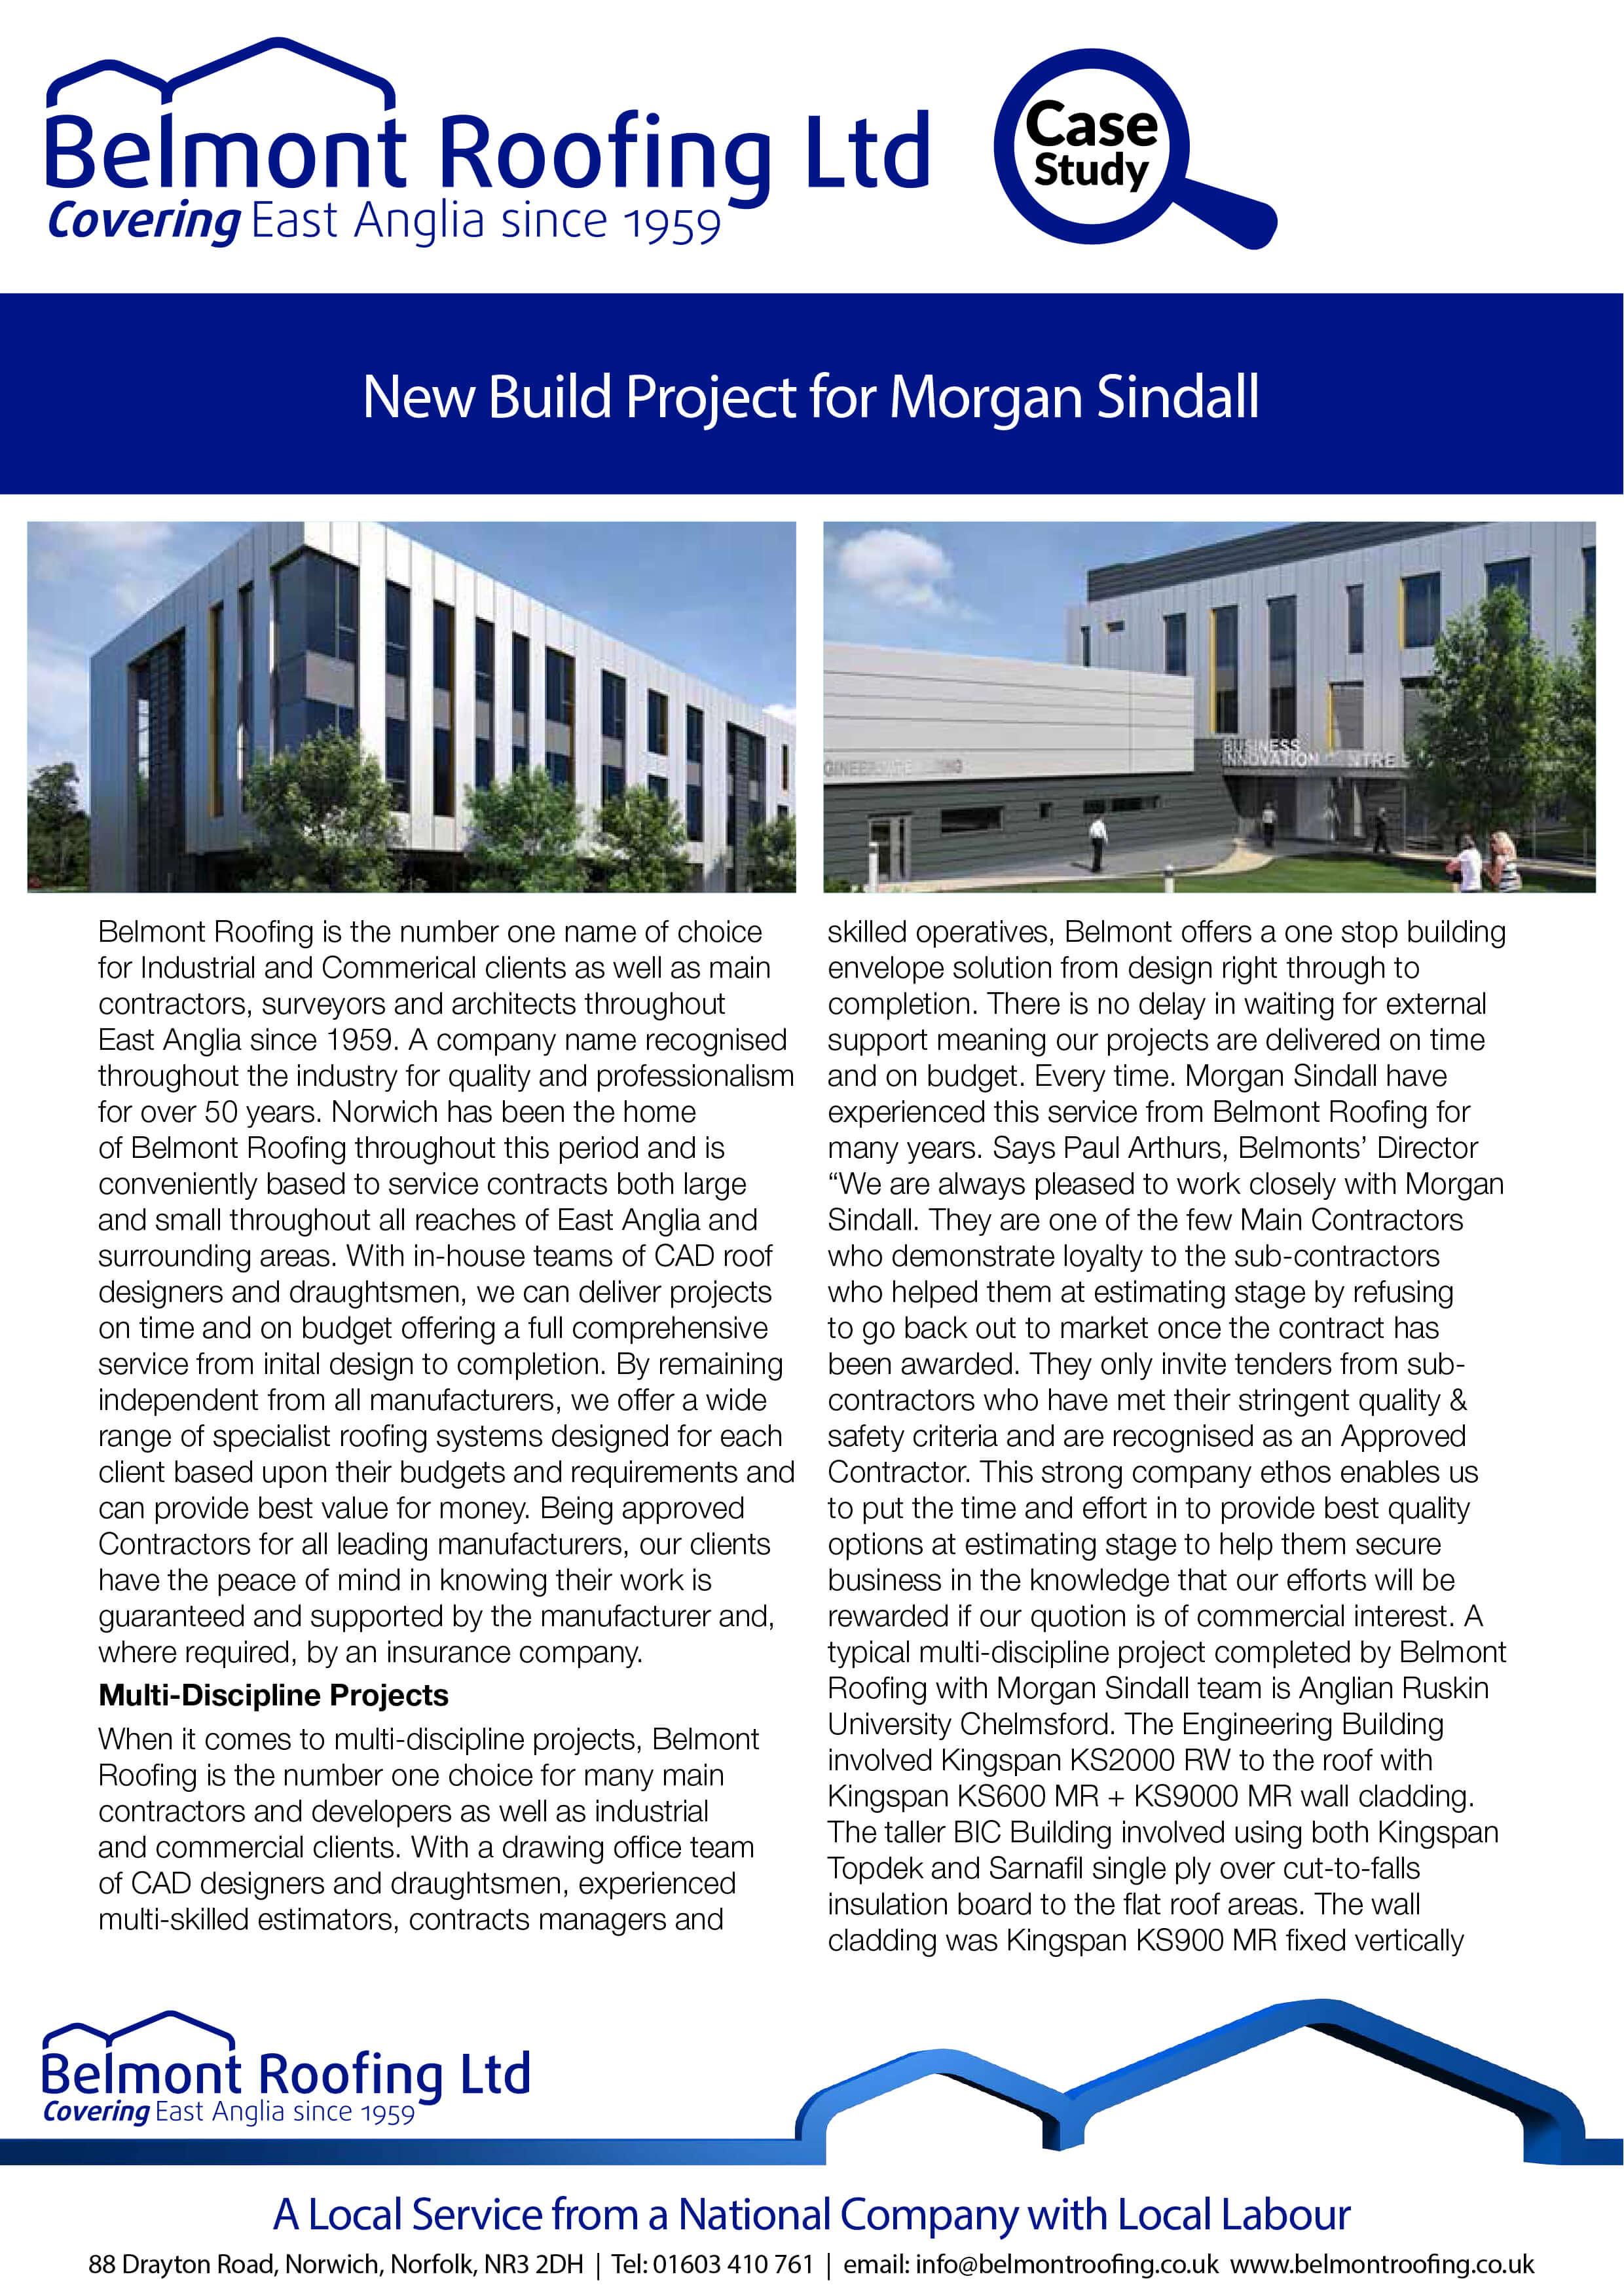 New Build for Morgan Sindall